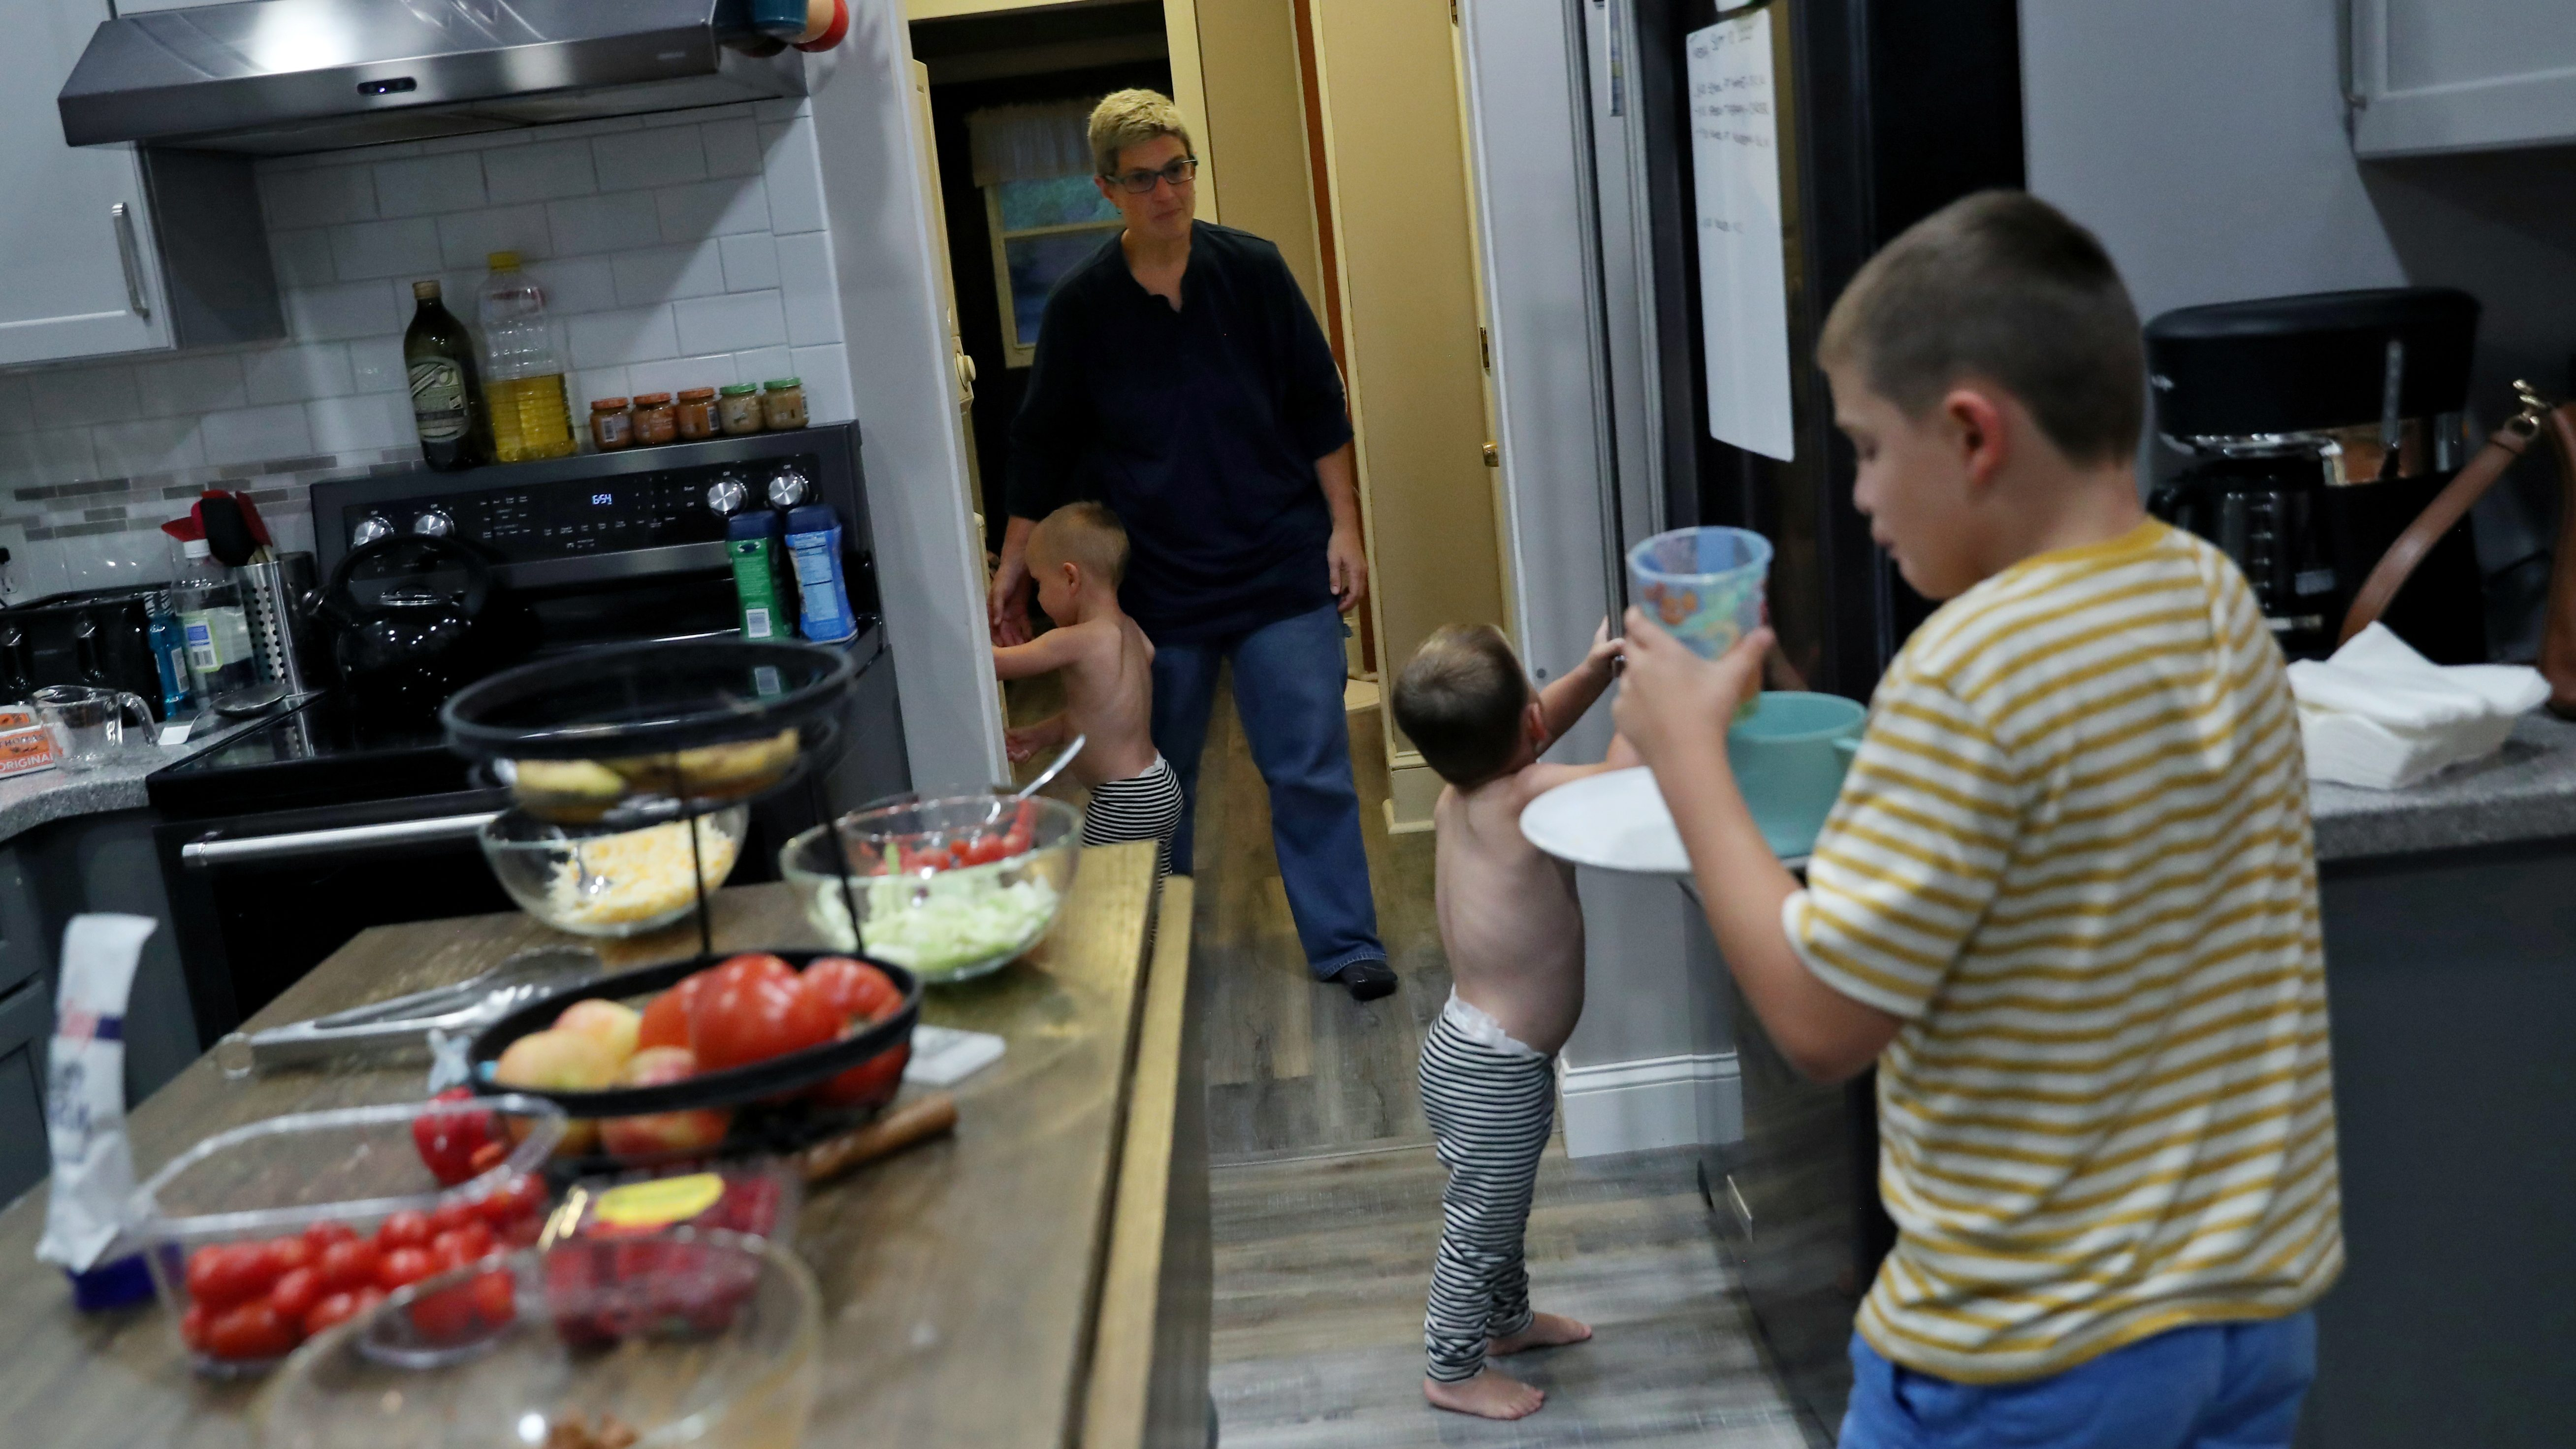 Rachel Newman herds her twin boys as her oldest, Benny, 9, brings his dinner dishes into the kitchen at the Newman home in Pitman, New Jersey, U.S., September 10, 2020.